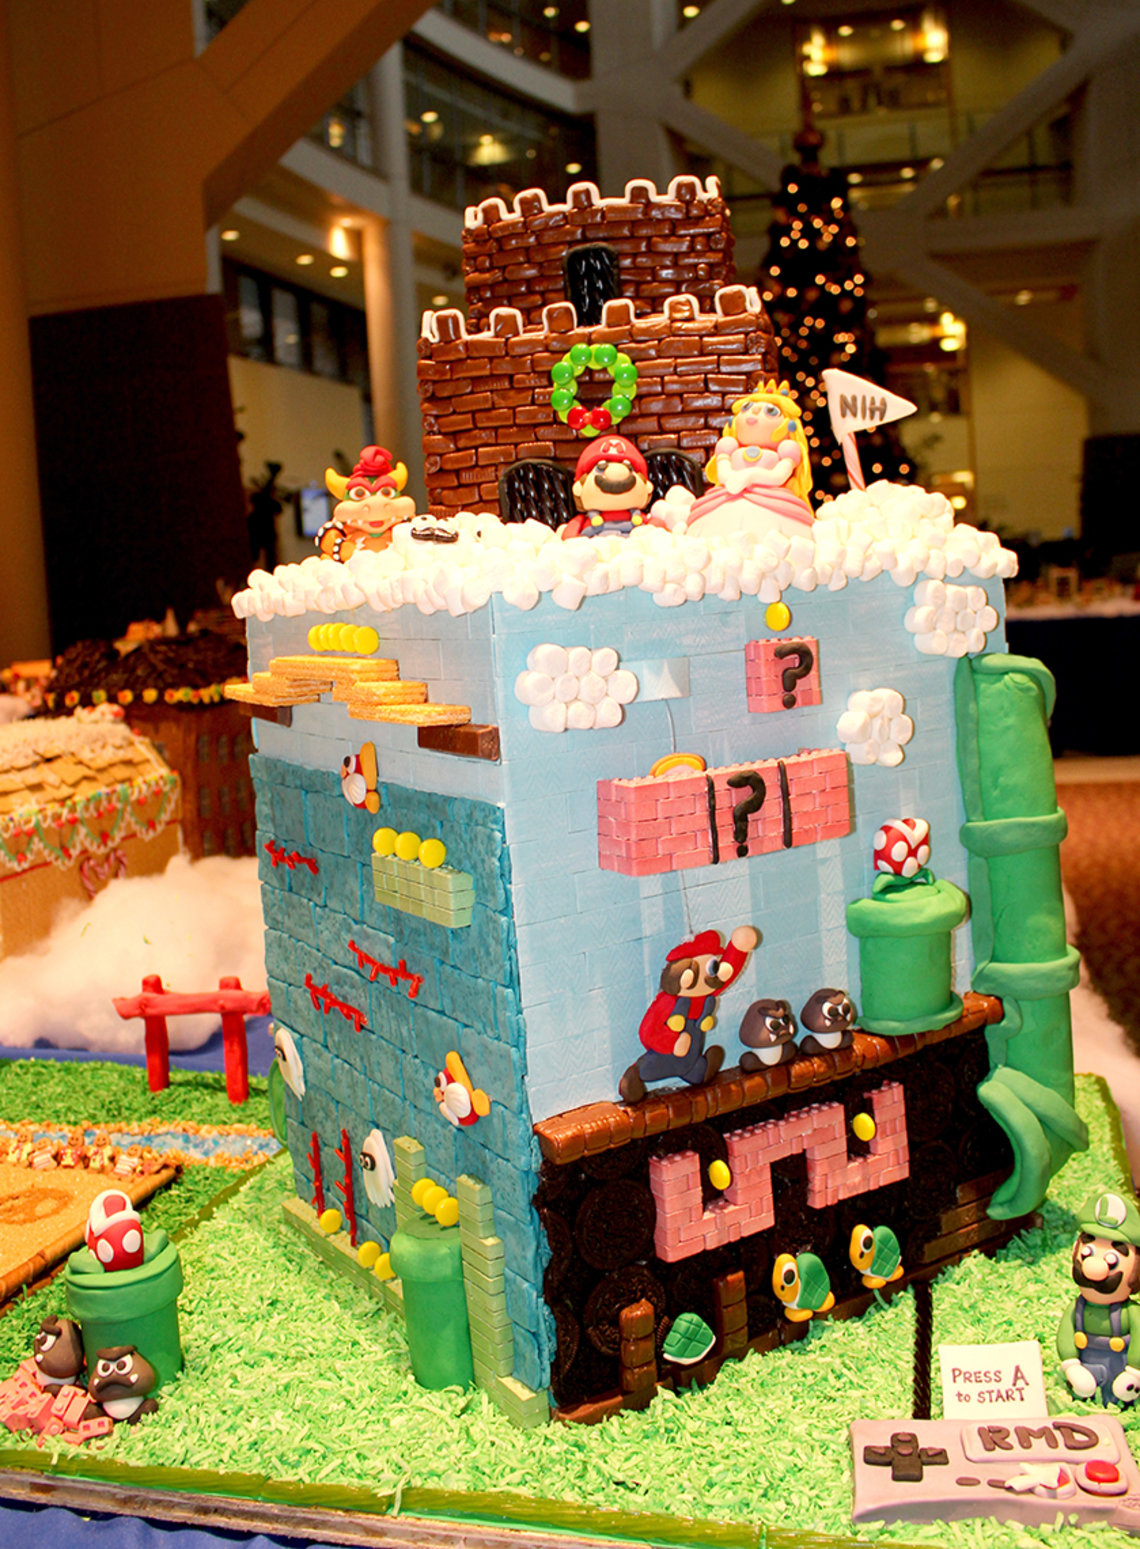 Winner of gingerbread house contest